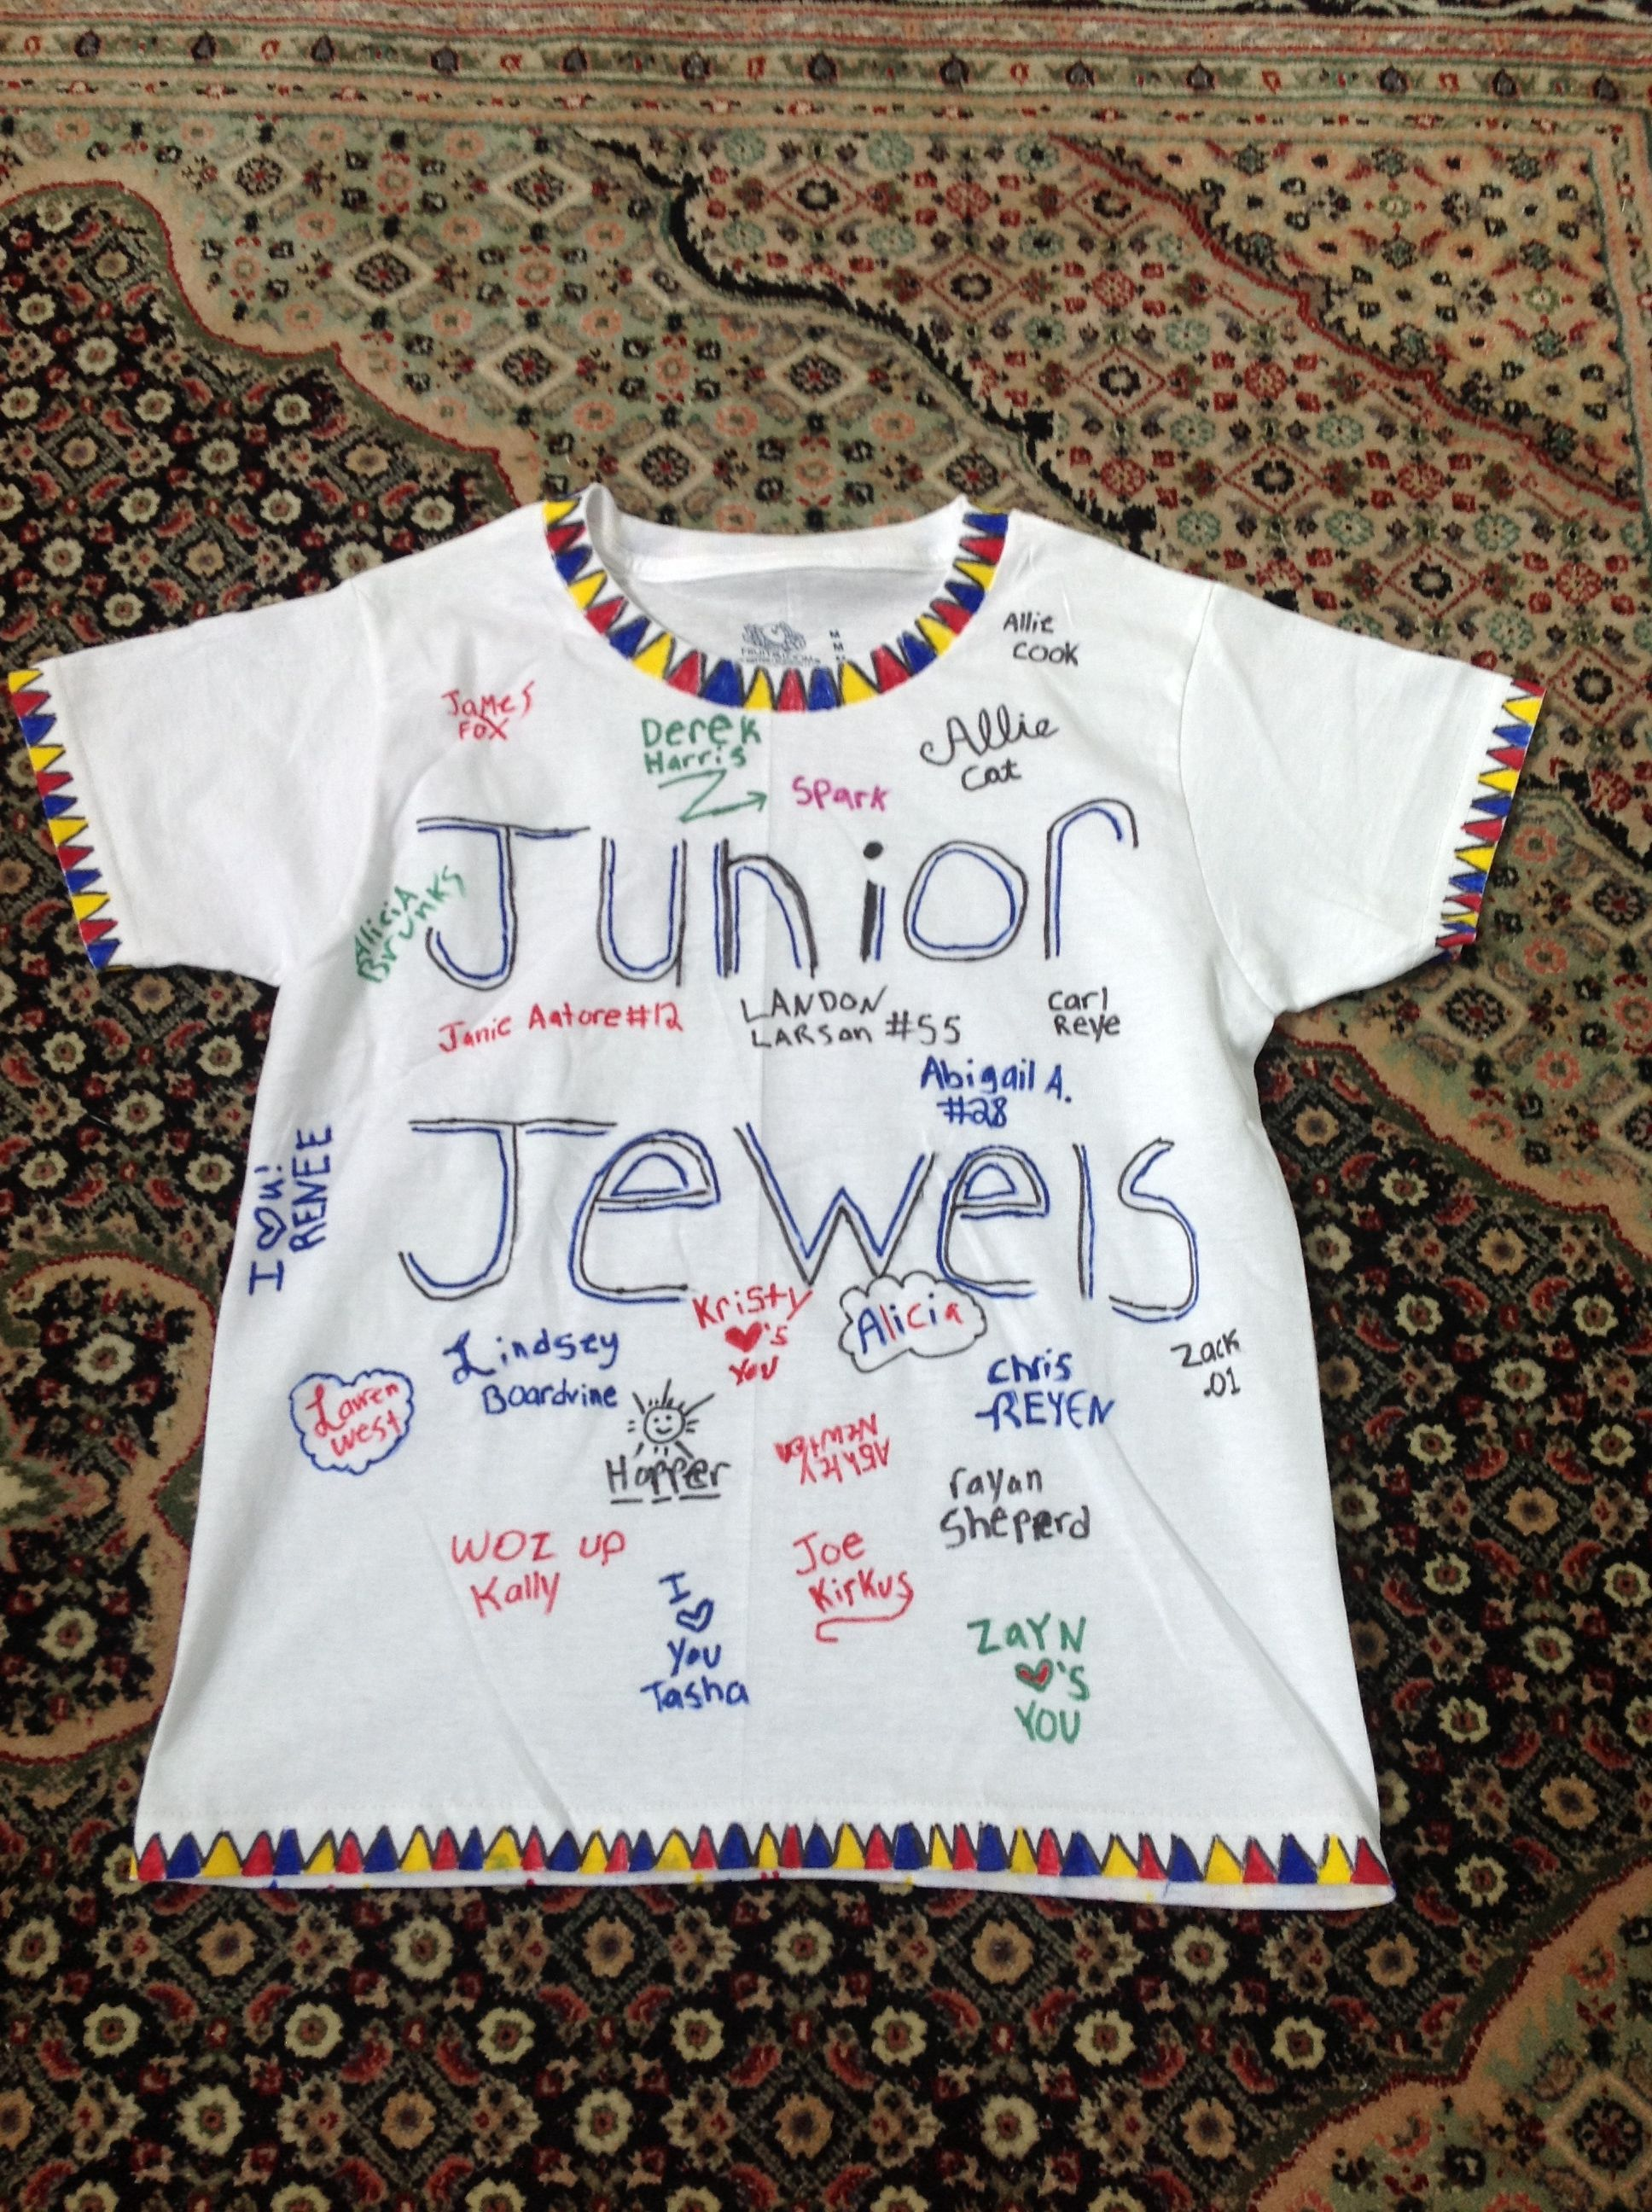 a4200946 Junior jewels Taylor Swift shirt. From the You Belong With Me music video.